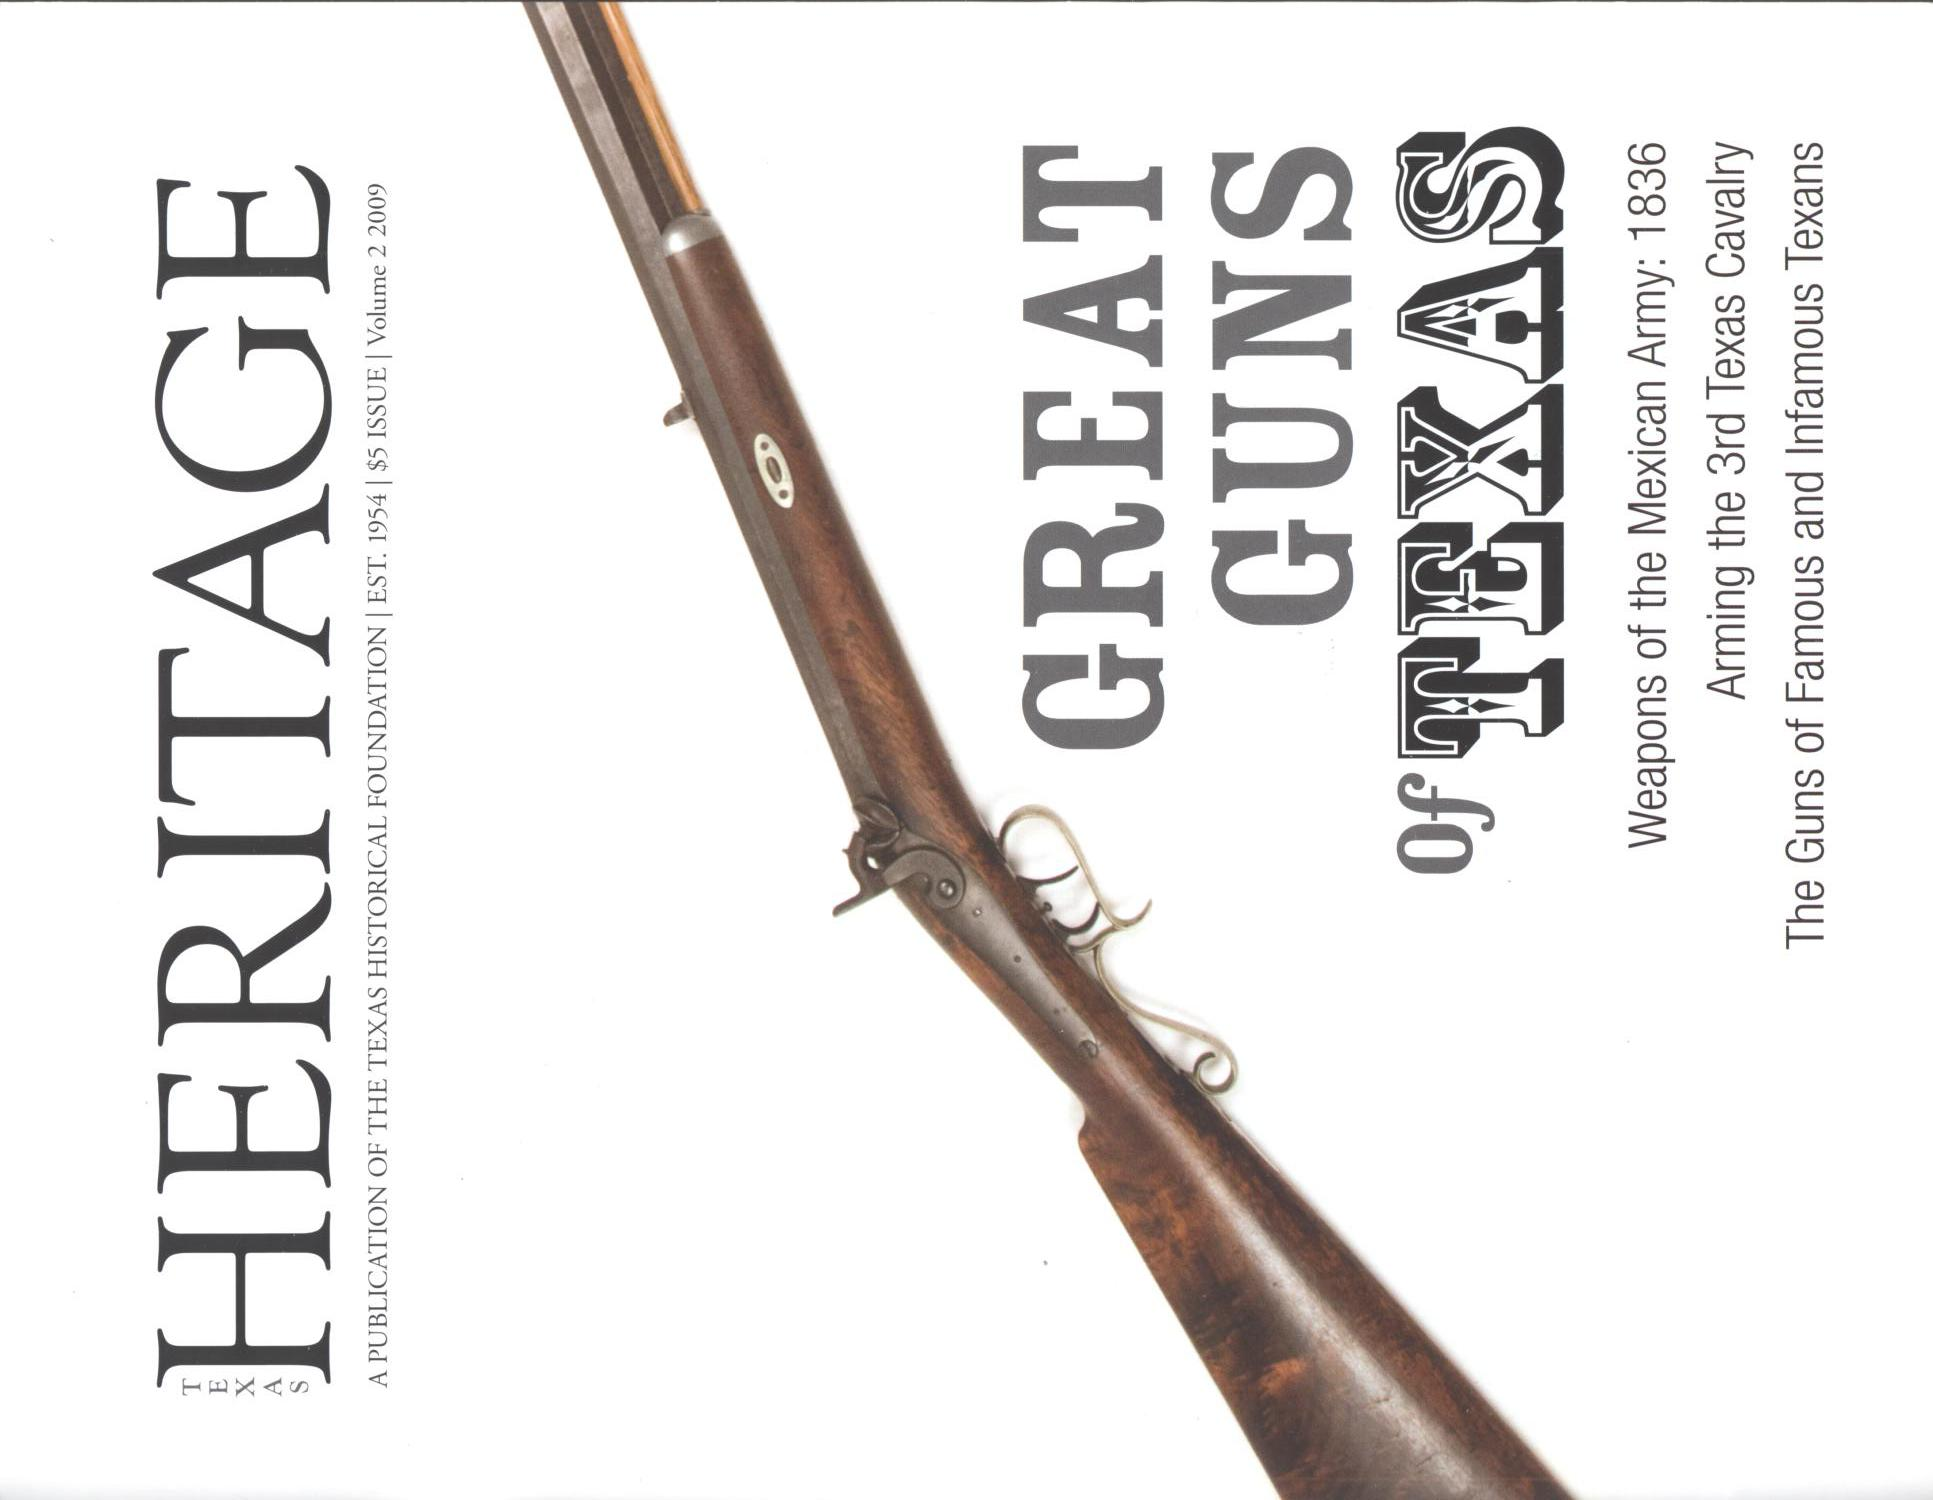 Heritage, 2009, Volume 2                                                                                                      Front Cover